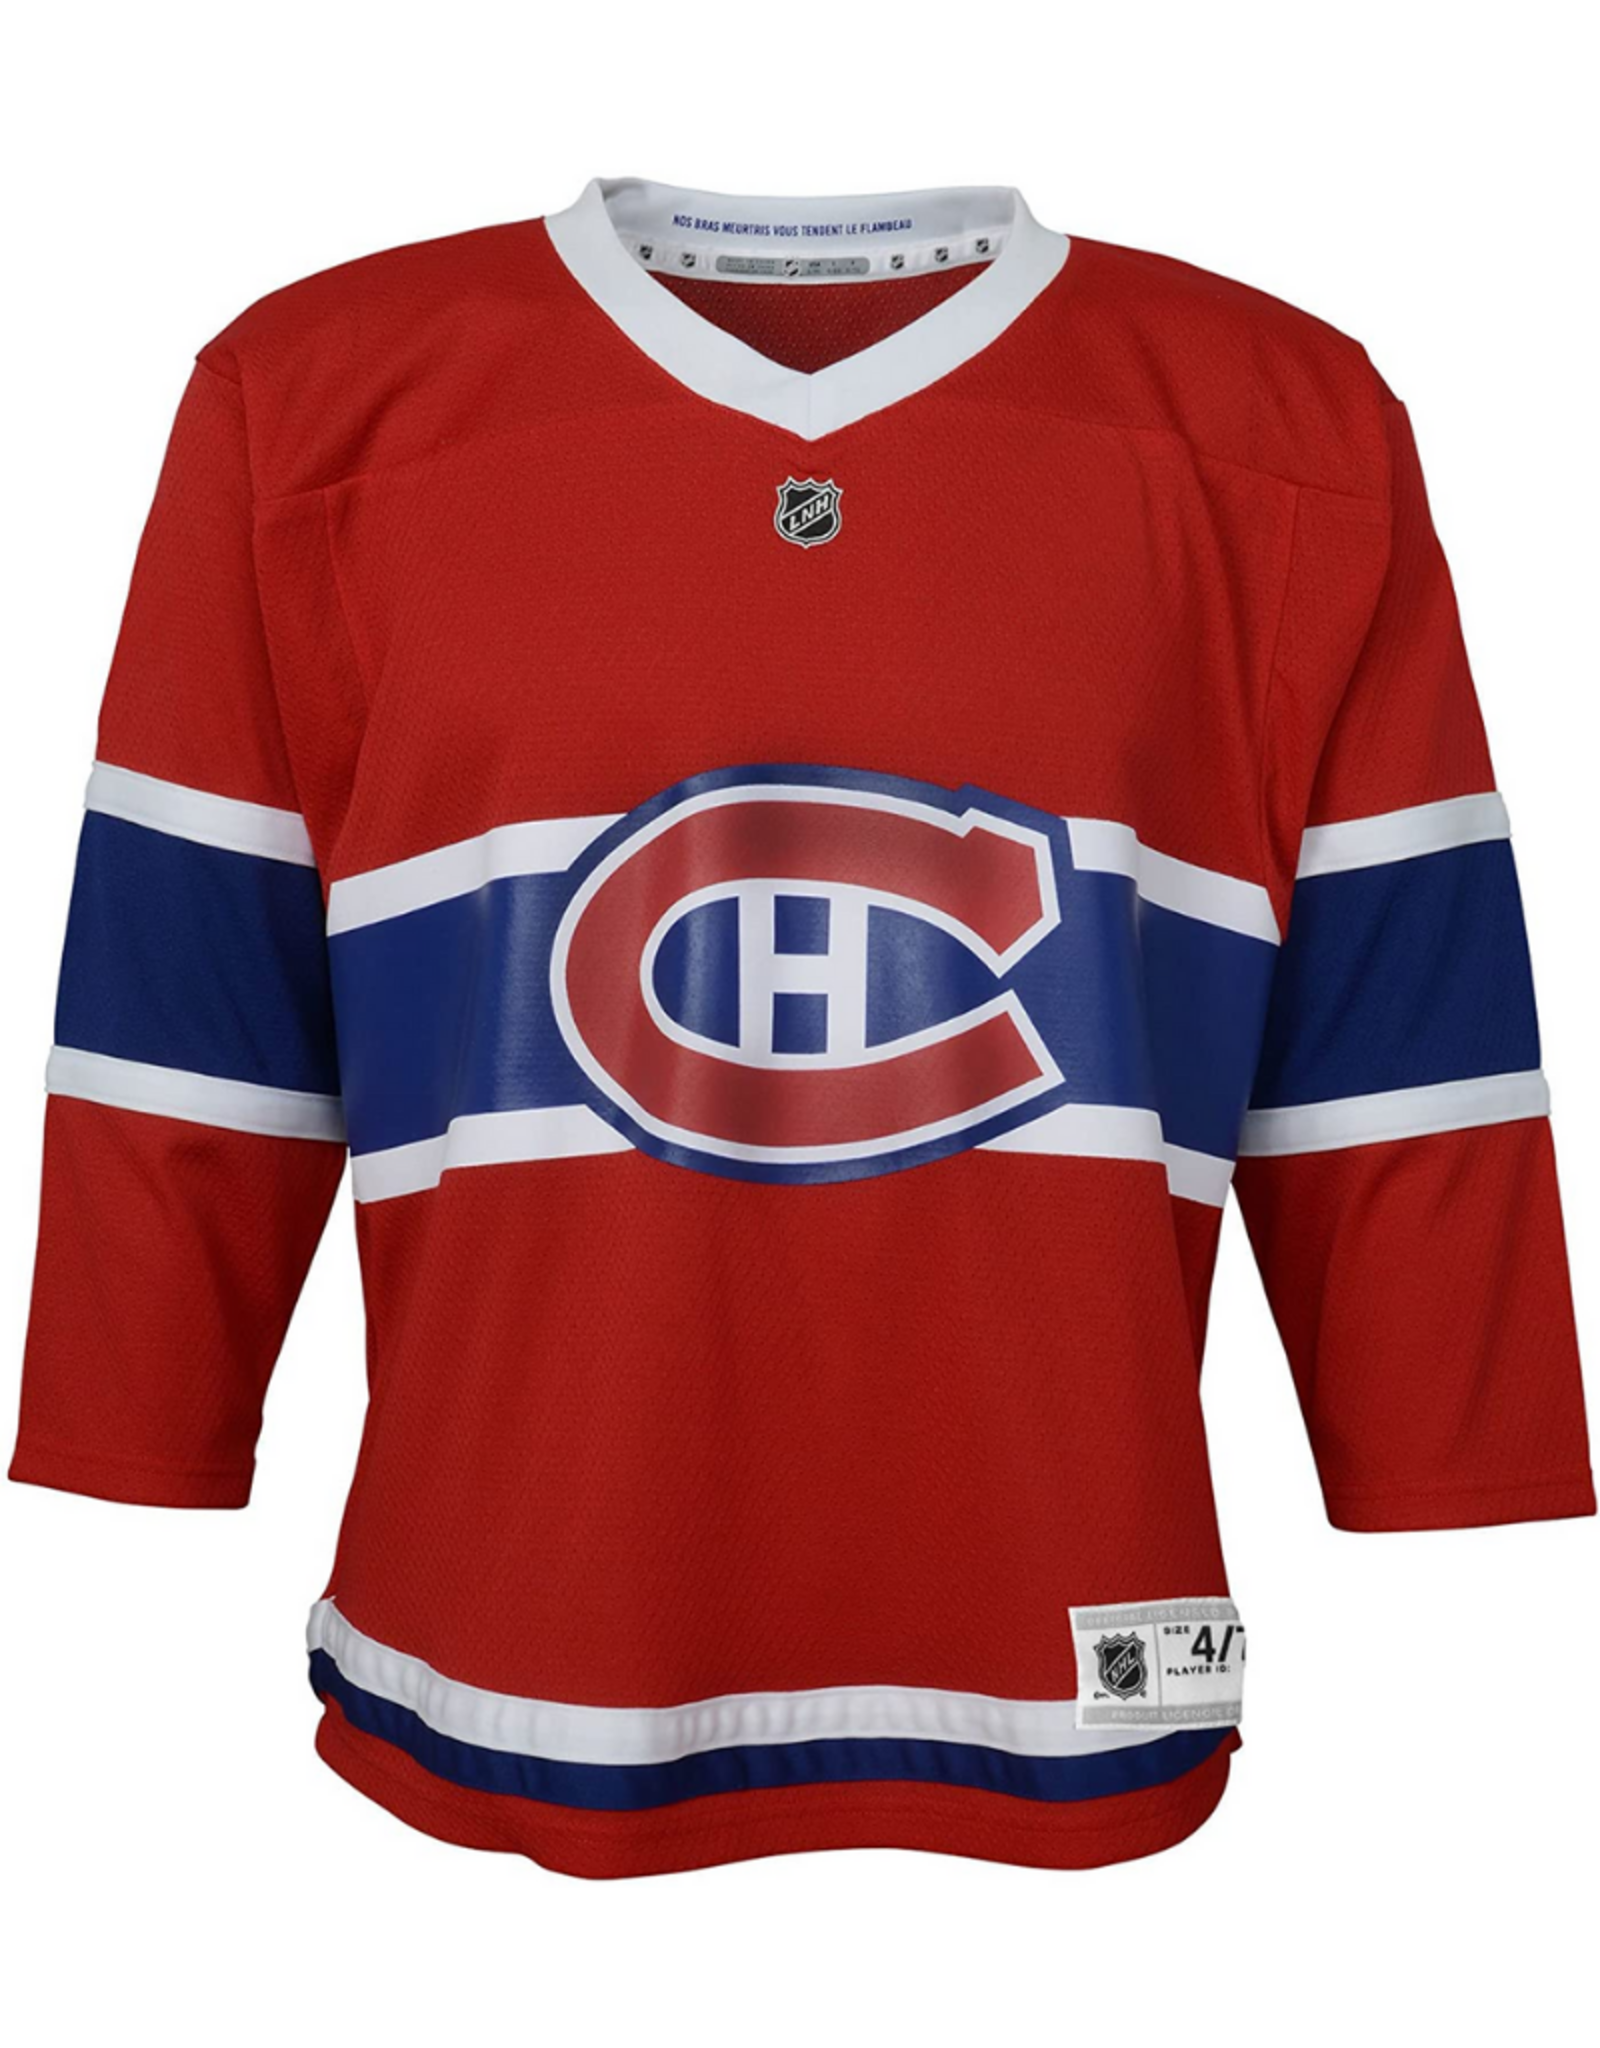 NHL Child's Jersey Montreal Canadiens Red